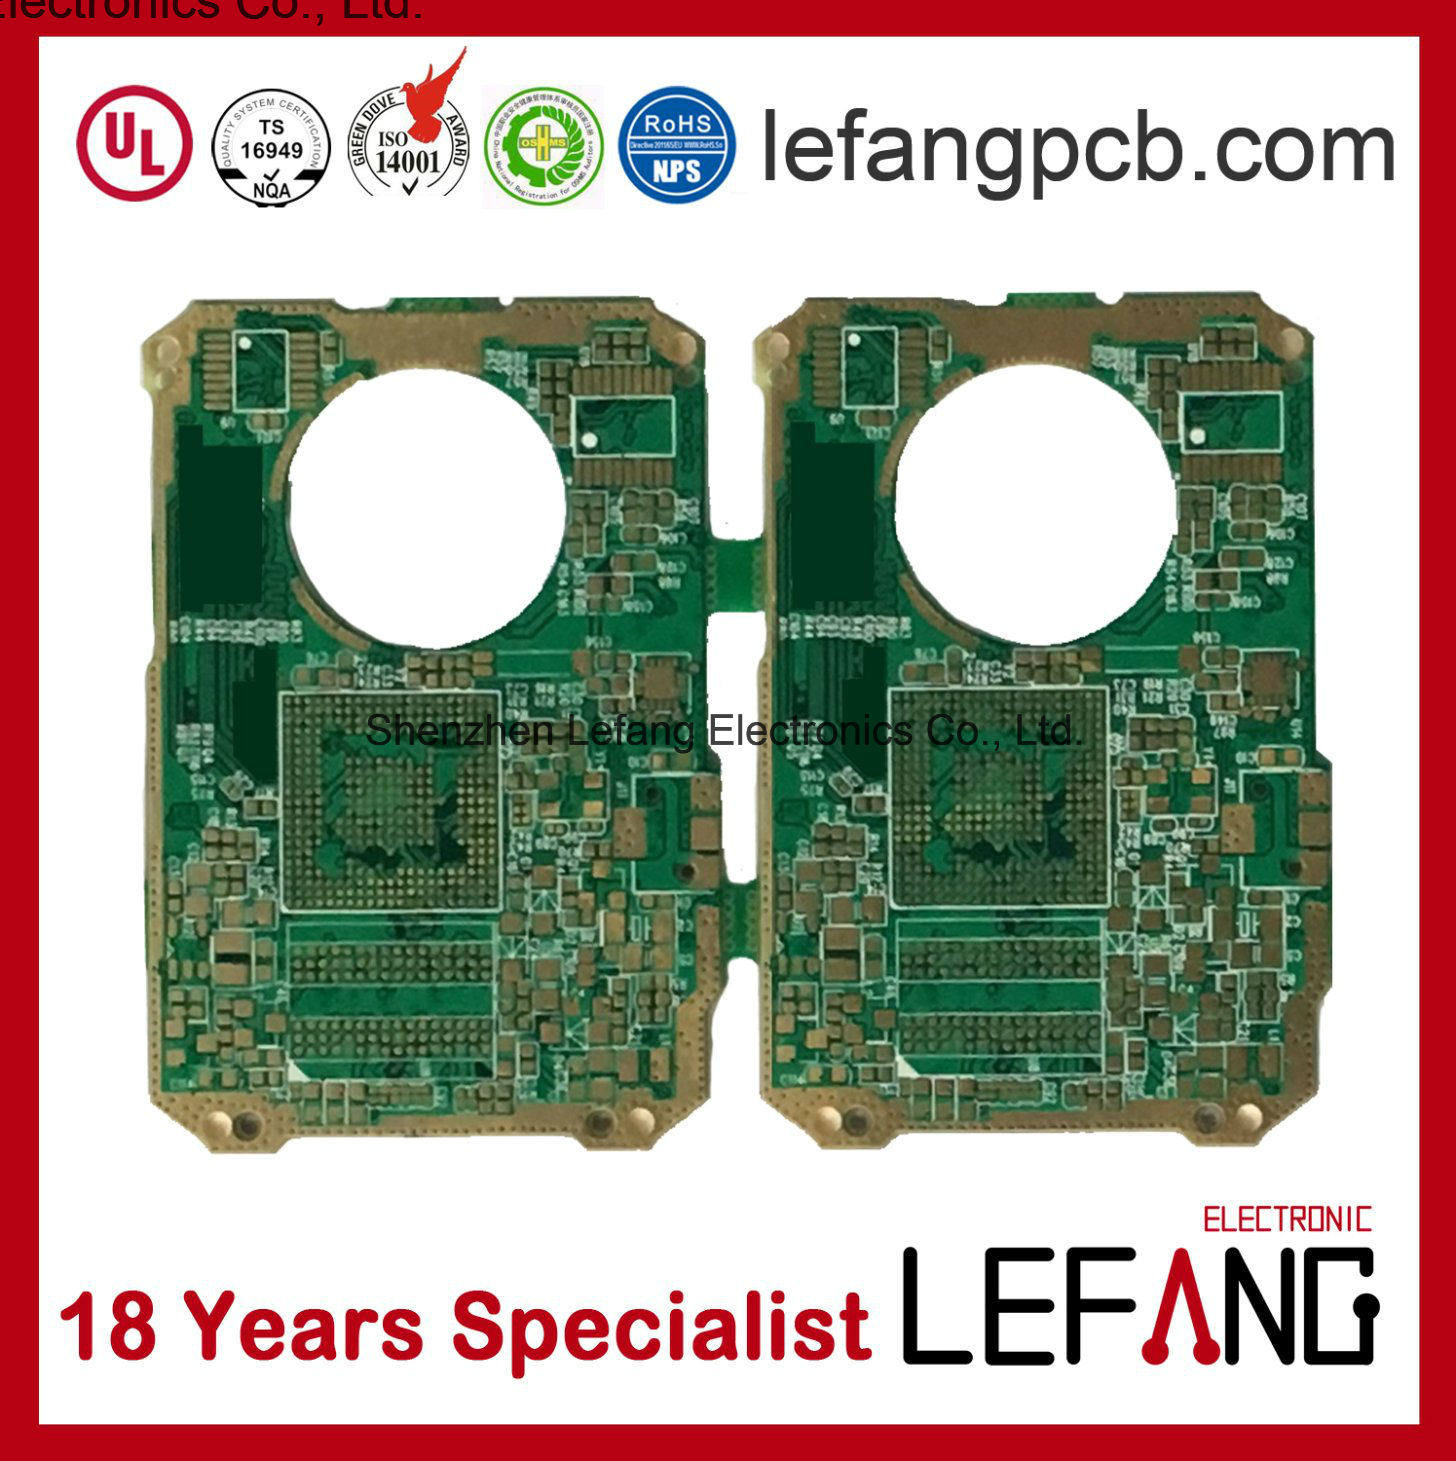 Wholesale Pcb Manufacturer Buy Reliable From Shenzhen Oem Electronic Printed Circuit Board Manufacturerpcb Rogers Enig For Electronics Power